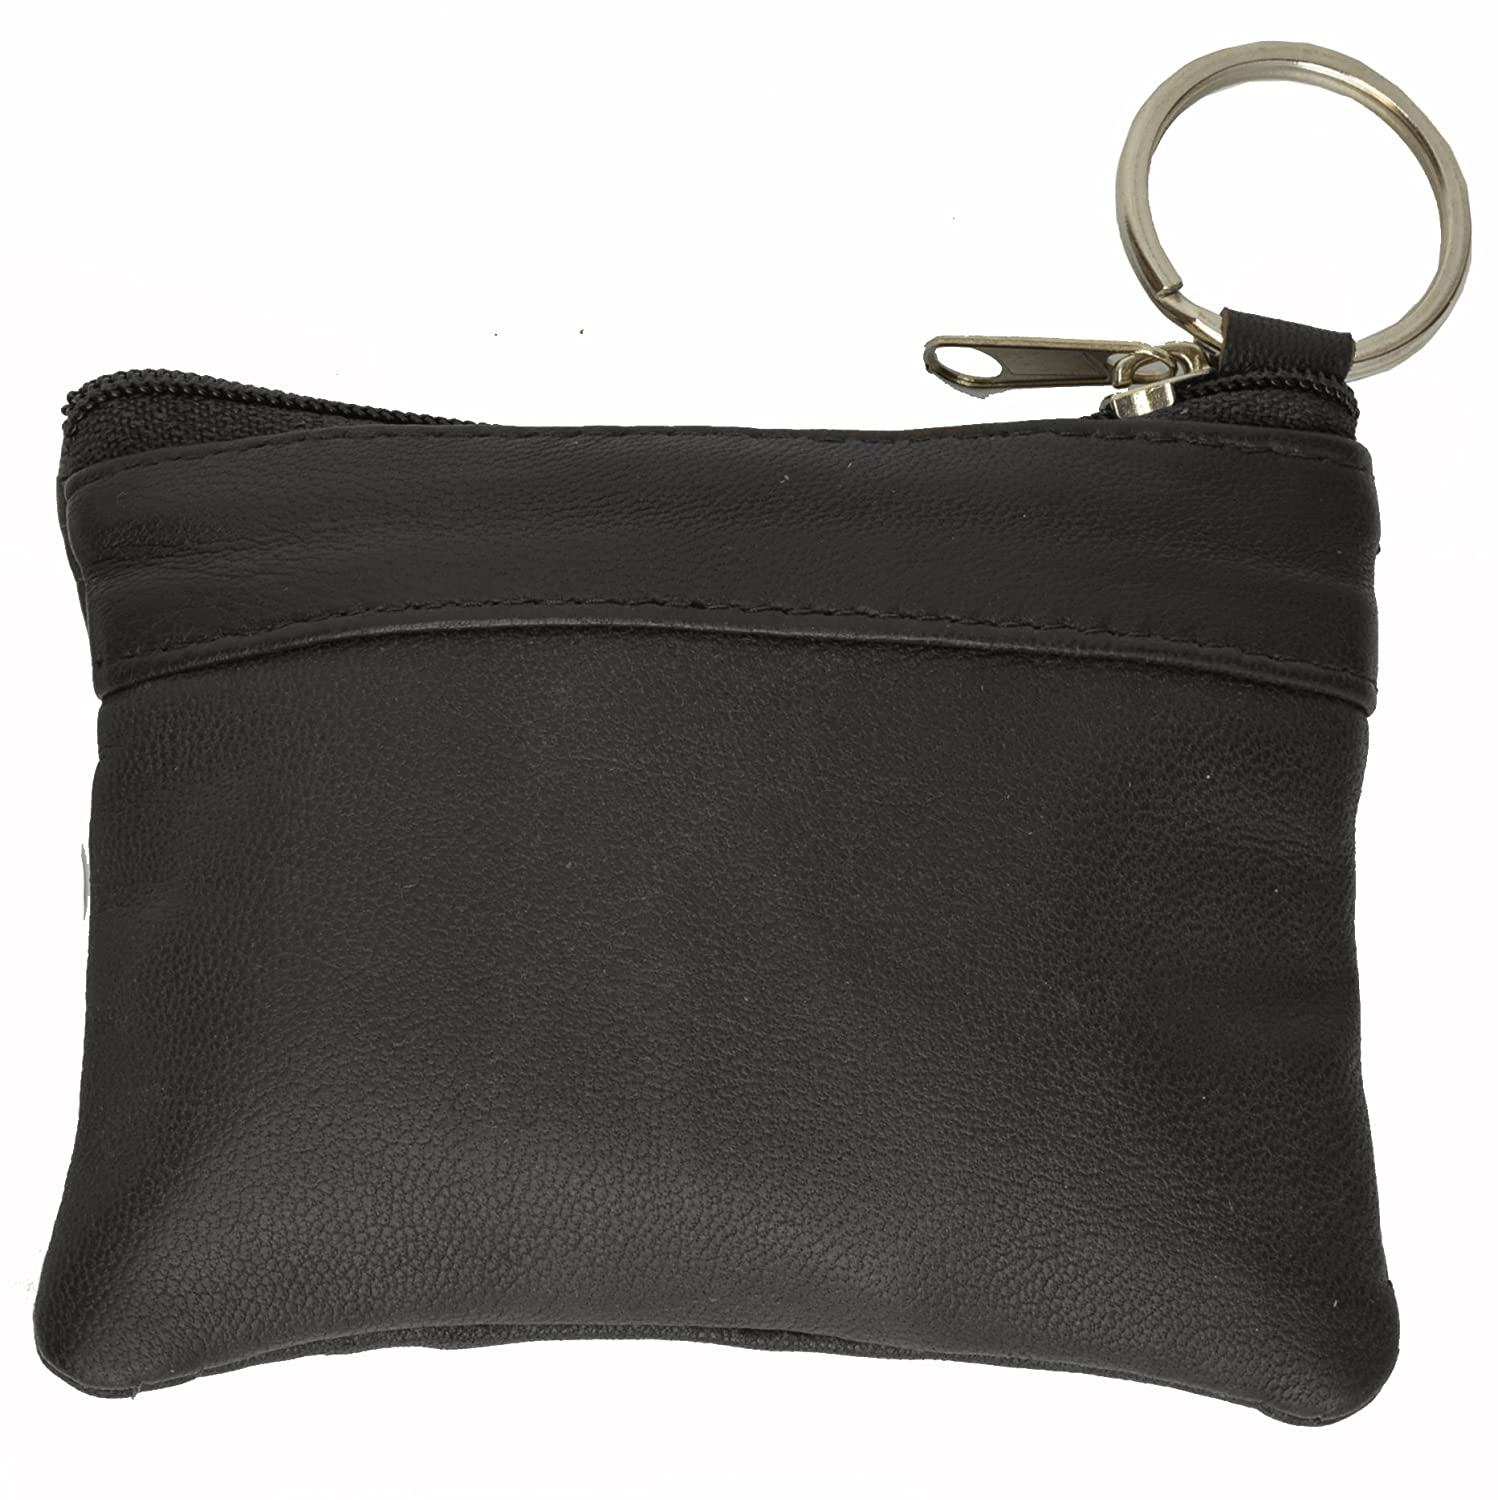 Amazon.com: cartera o cambiar Purse, negro, normal: Clothing